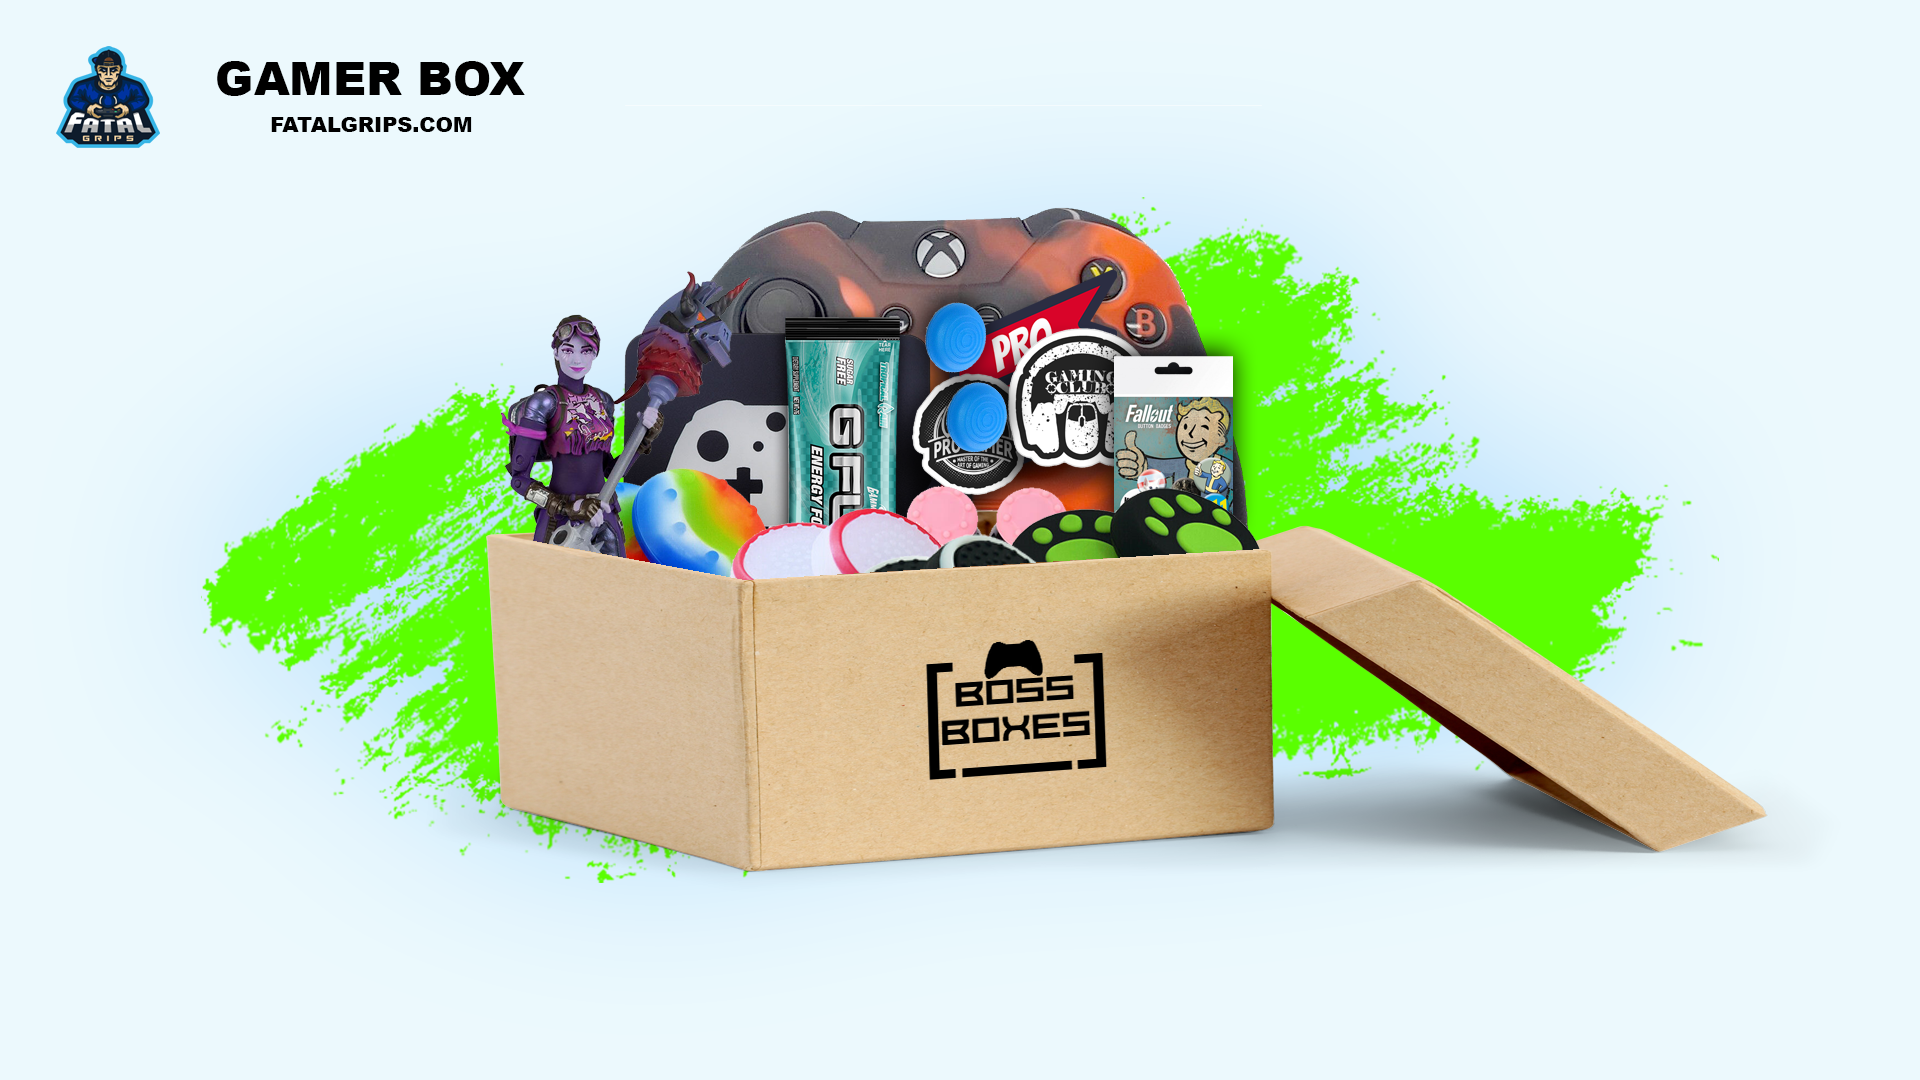 Gamer Box Xbox One - Fatal Grips